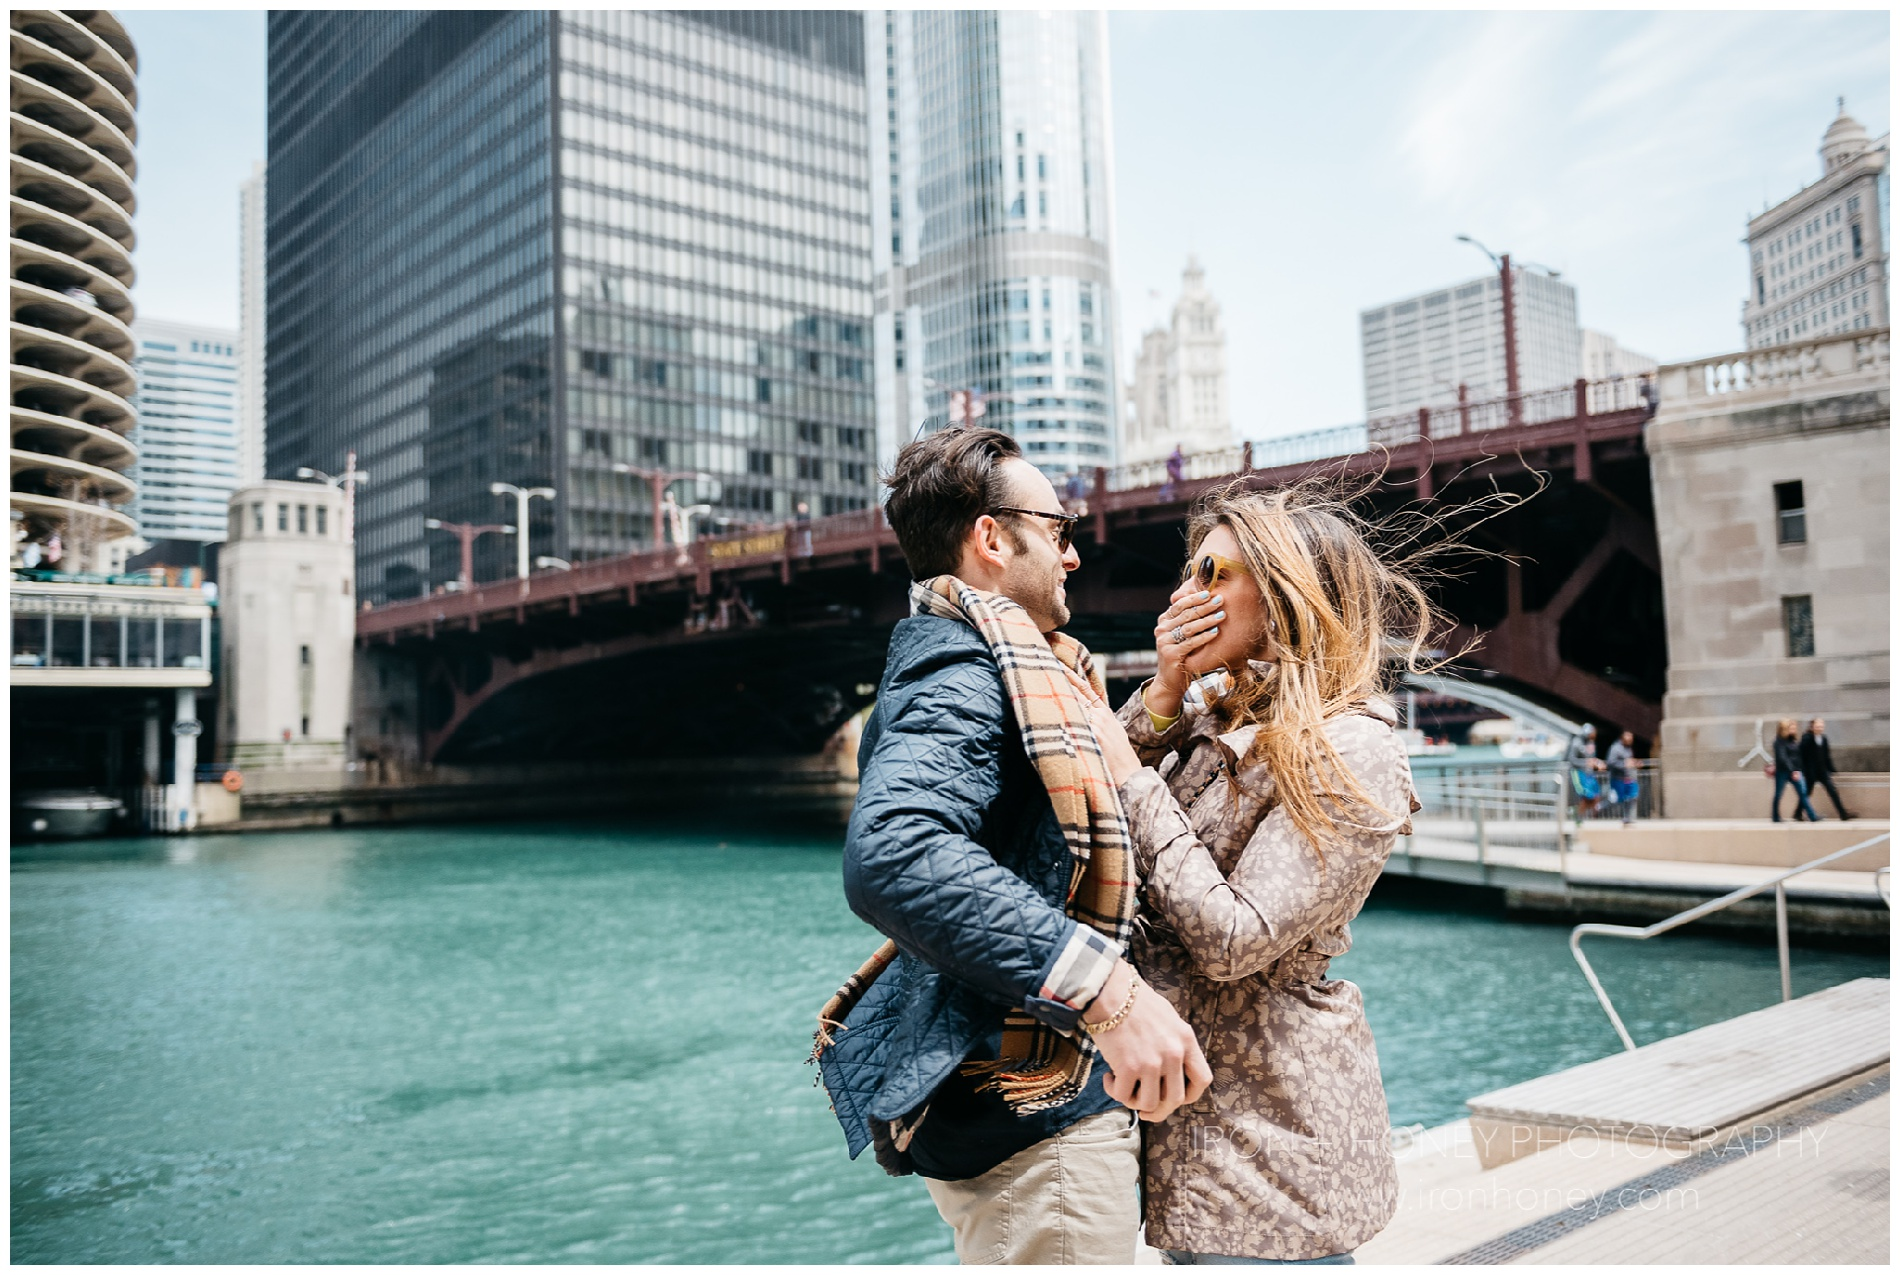 chicago riverwalk proposal, proposal, city winery, chicago, riverwalk, river, lake michigan, boat, goodman theater, engagement, surprise, chicago engagement photographer, chicago blogger, proposal photographer, photographer, chicago wedding photographer, chicago elopement photographer